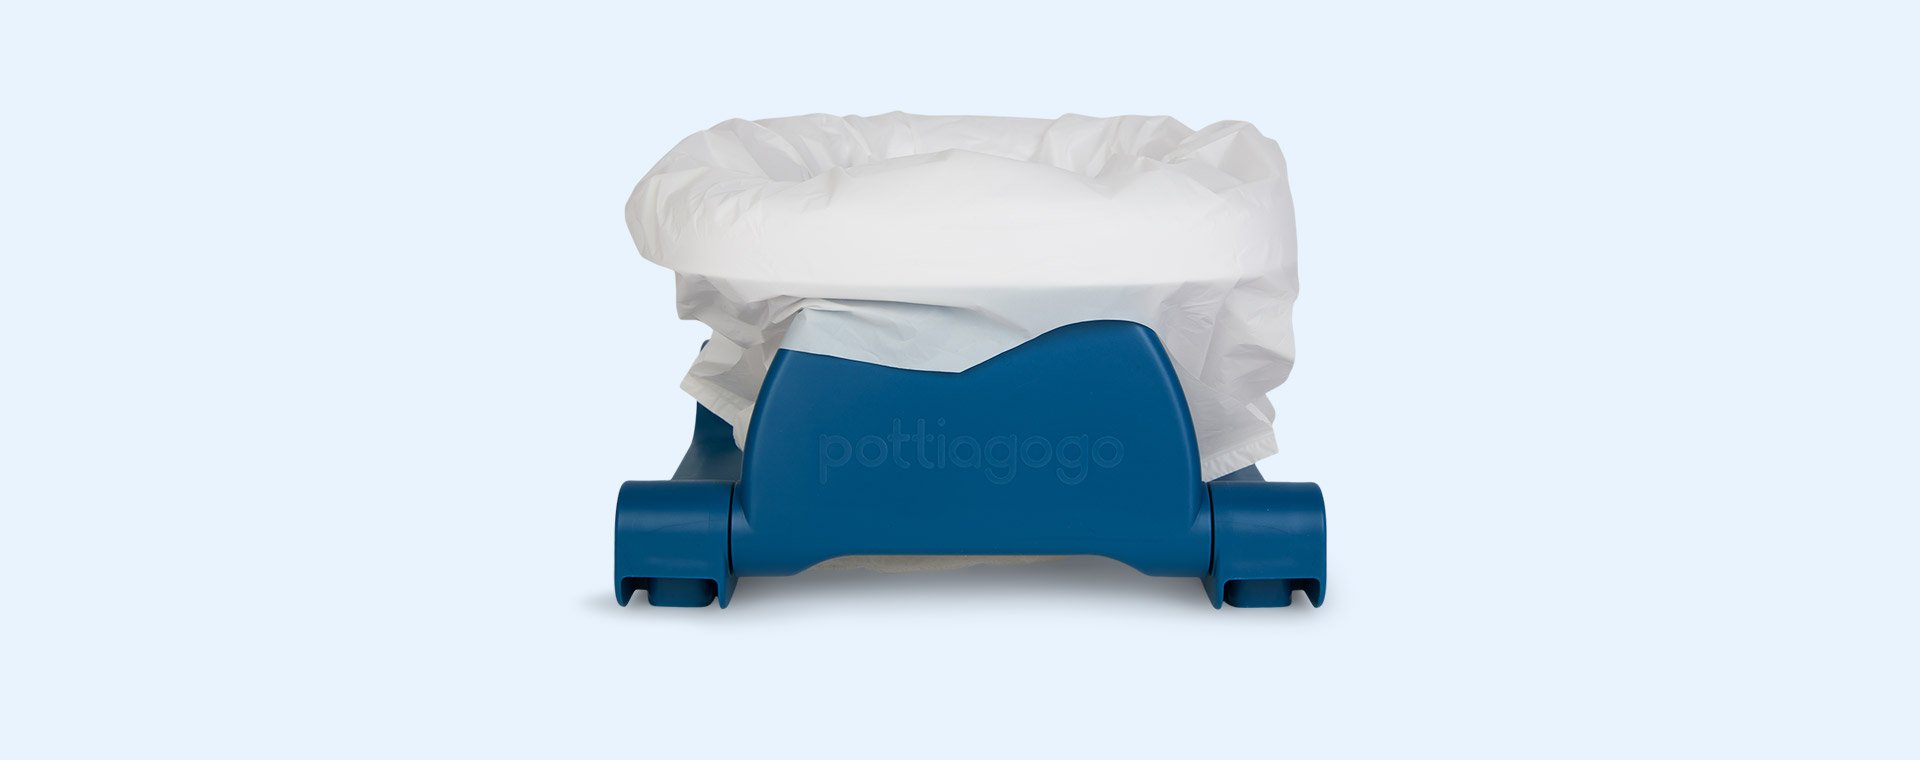 White Pottiagogo Biodegradable Potty Liners